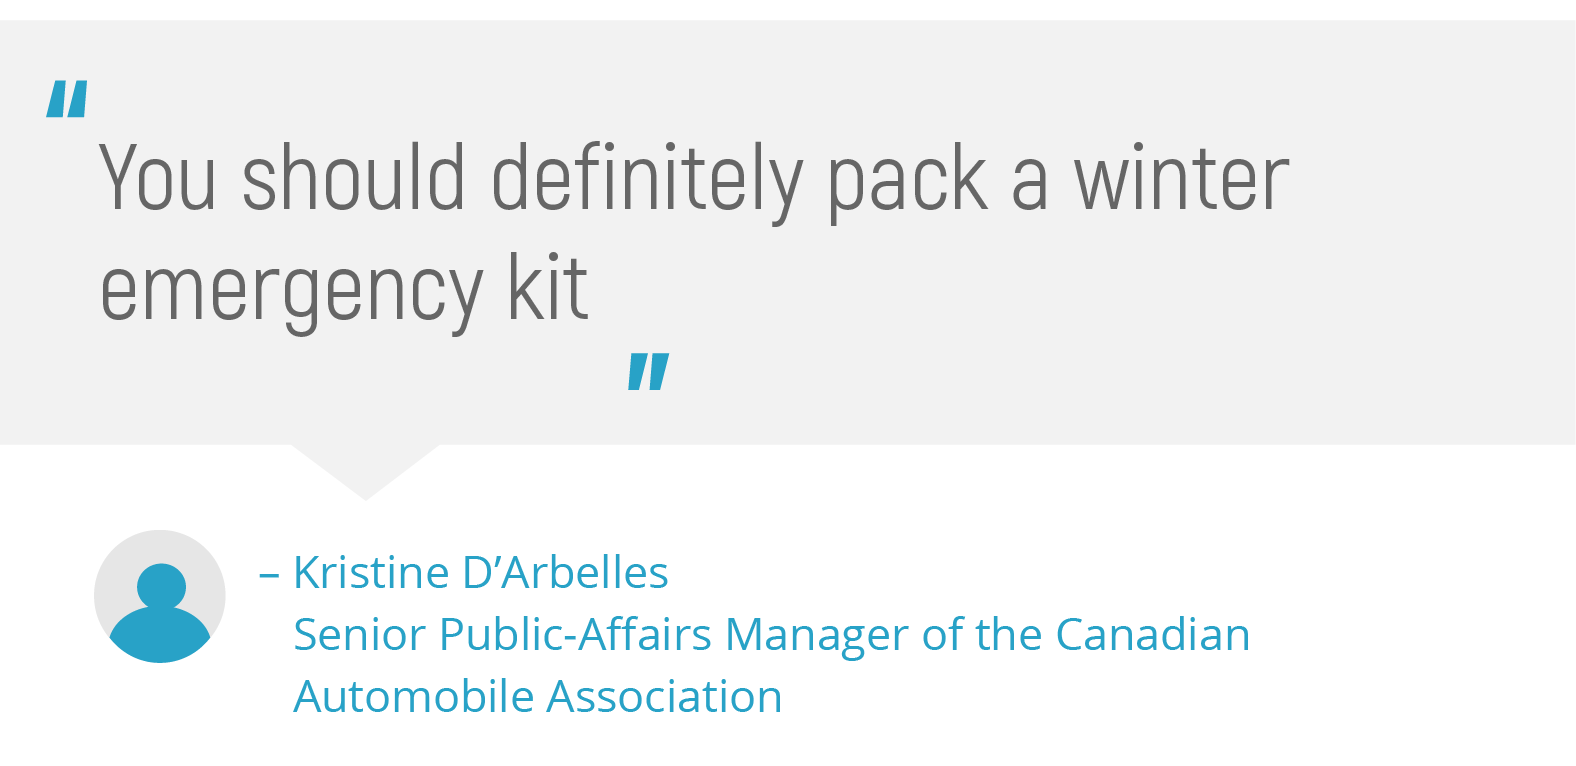 Pull quote on packing a winter emergency kit from Kristine D'Arbelles